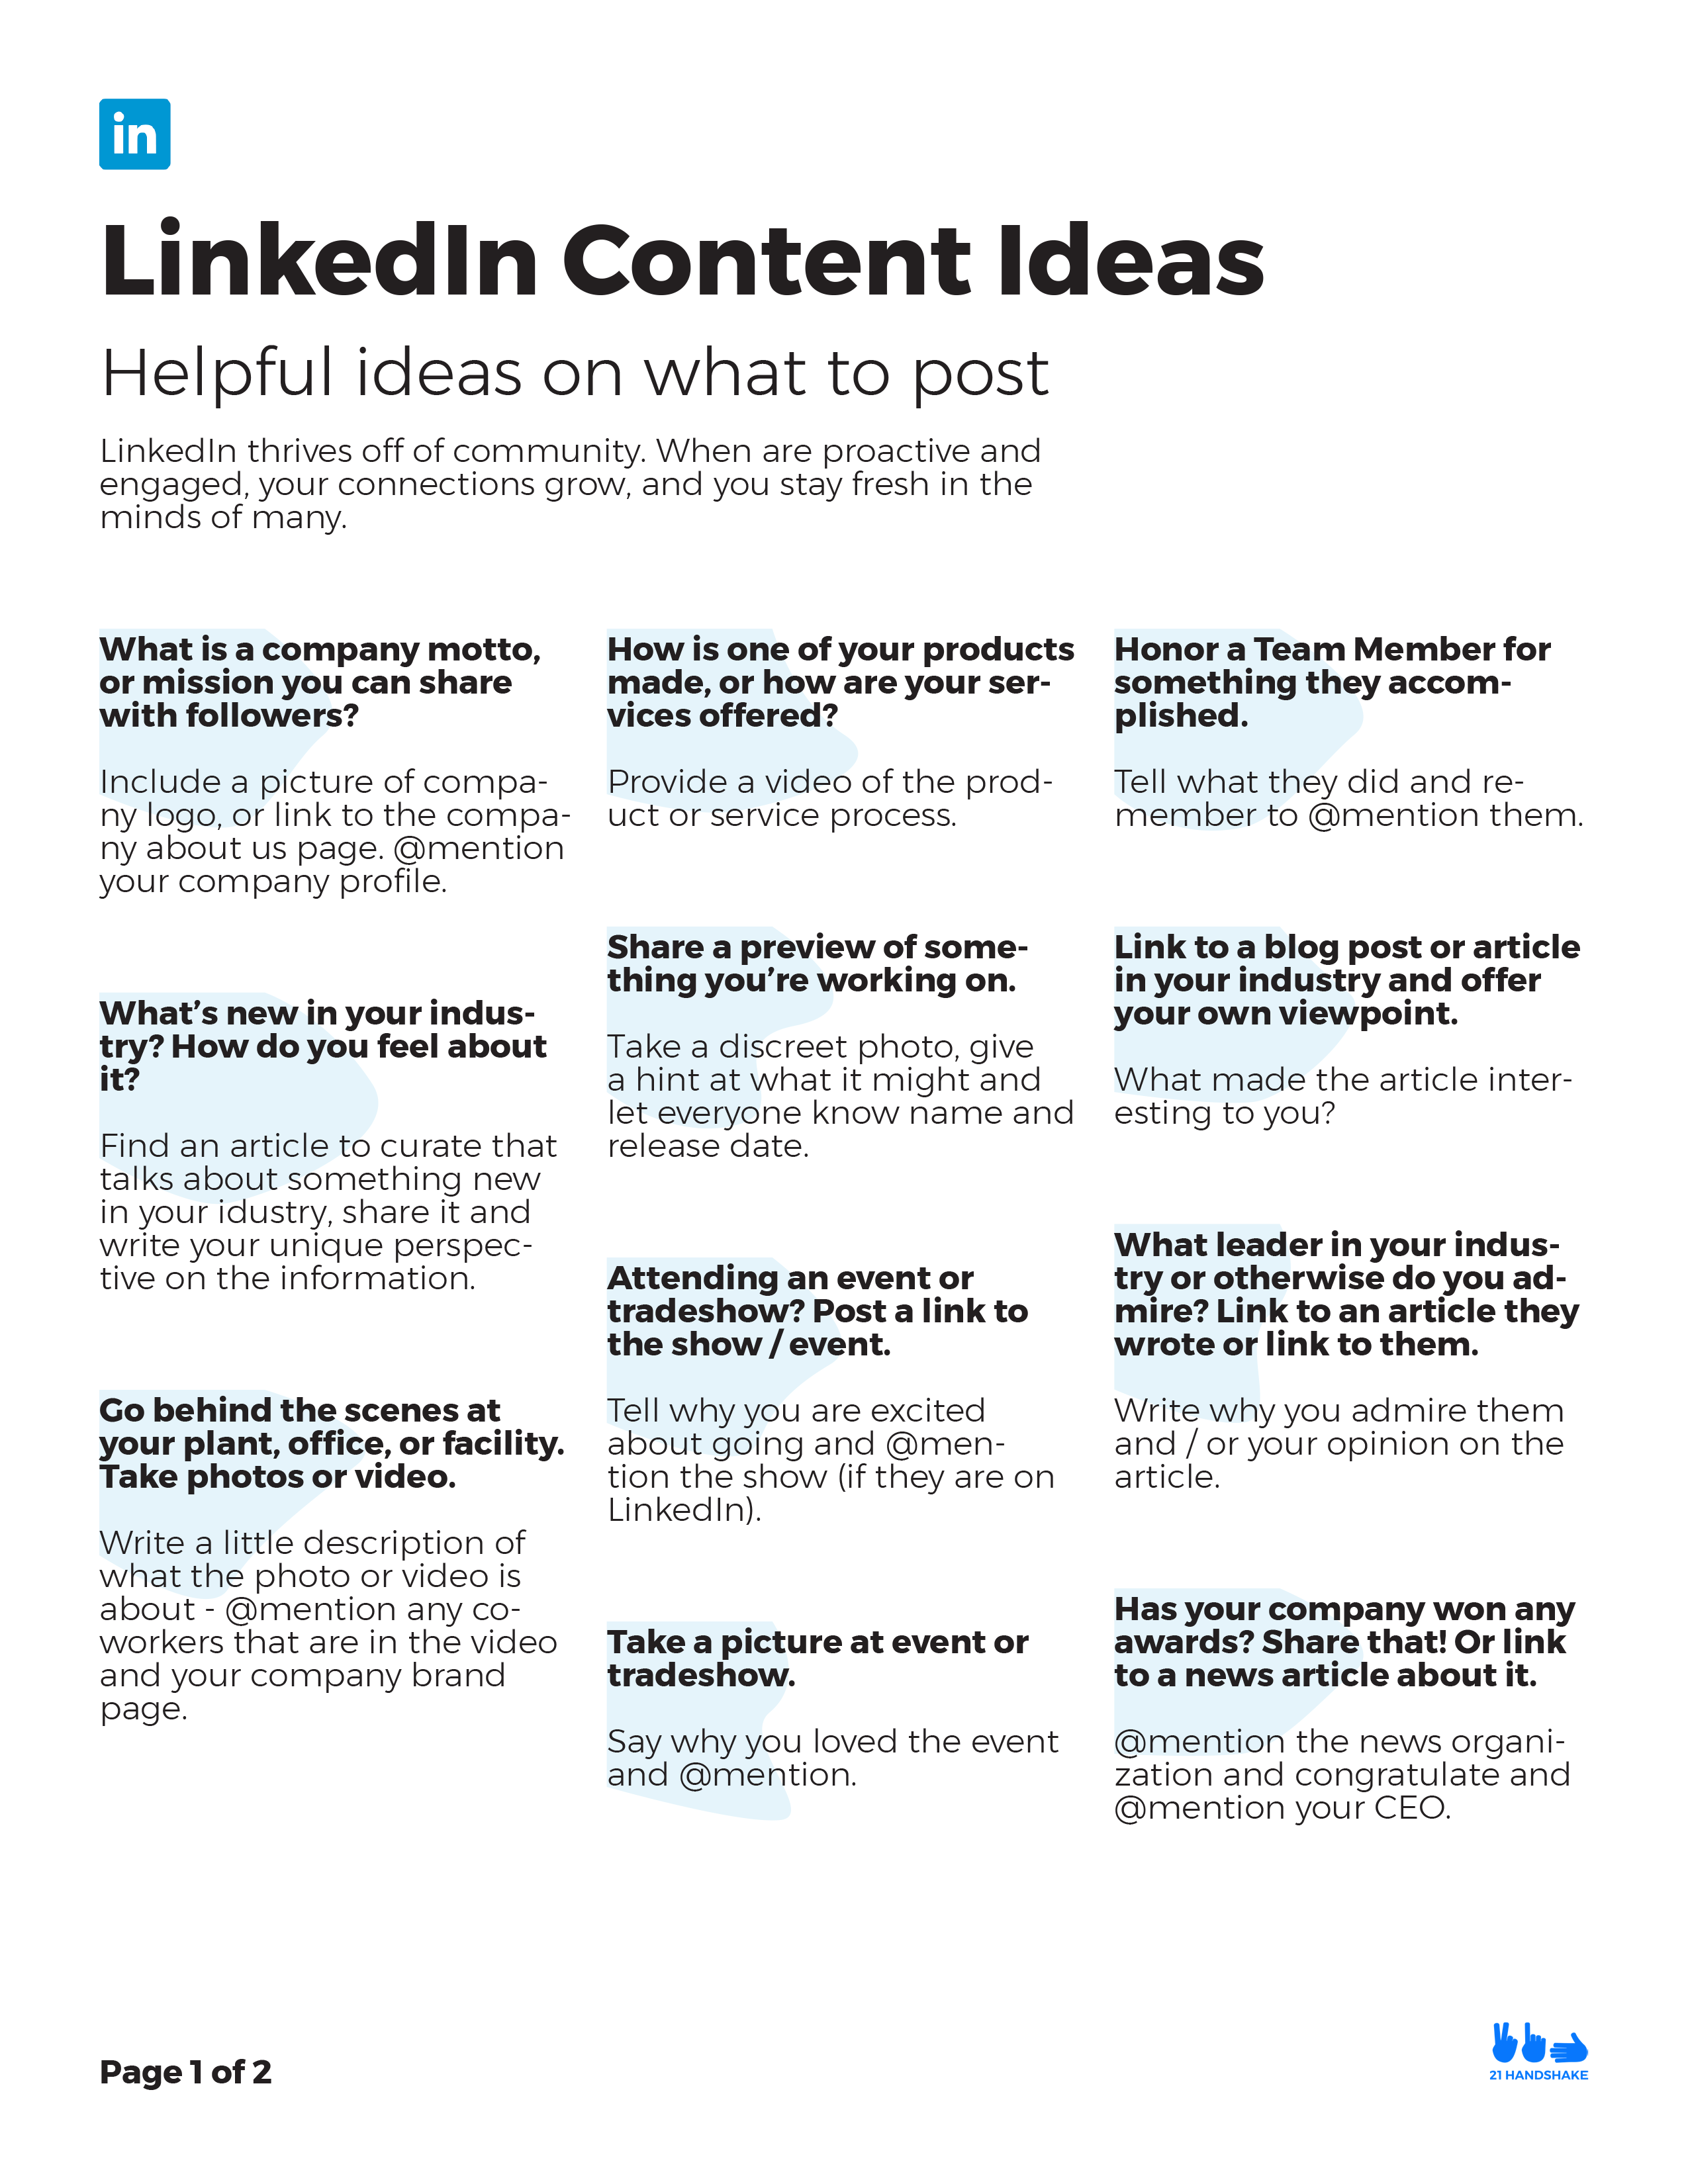 LinkedIn Content Ideas PDF Resource